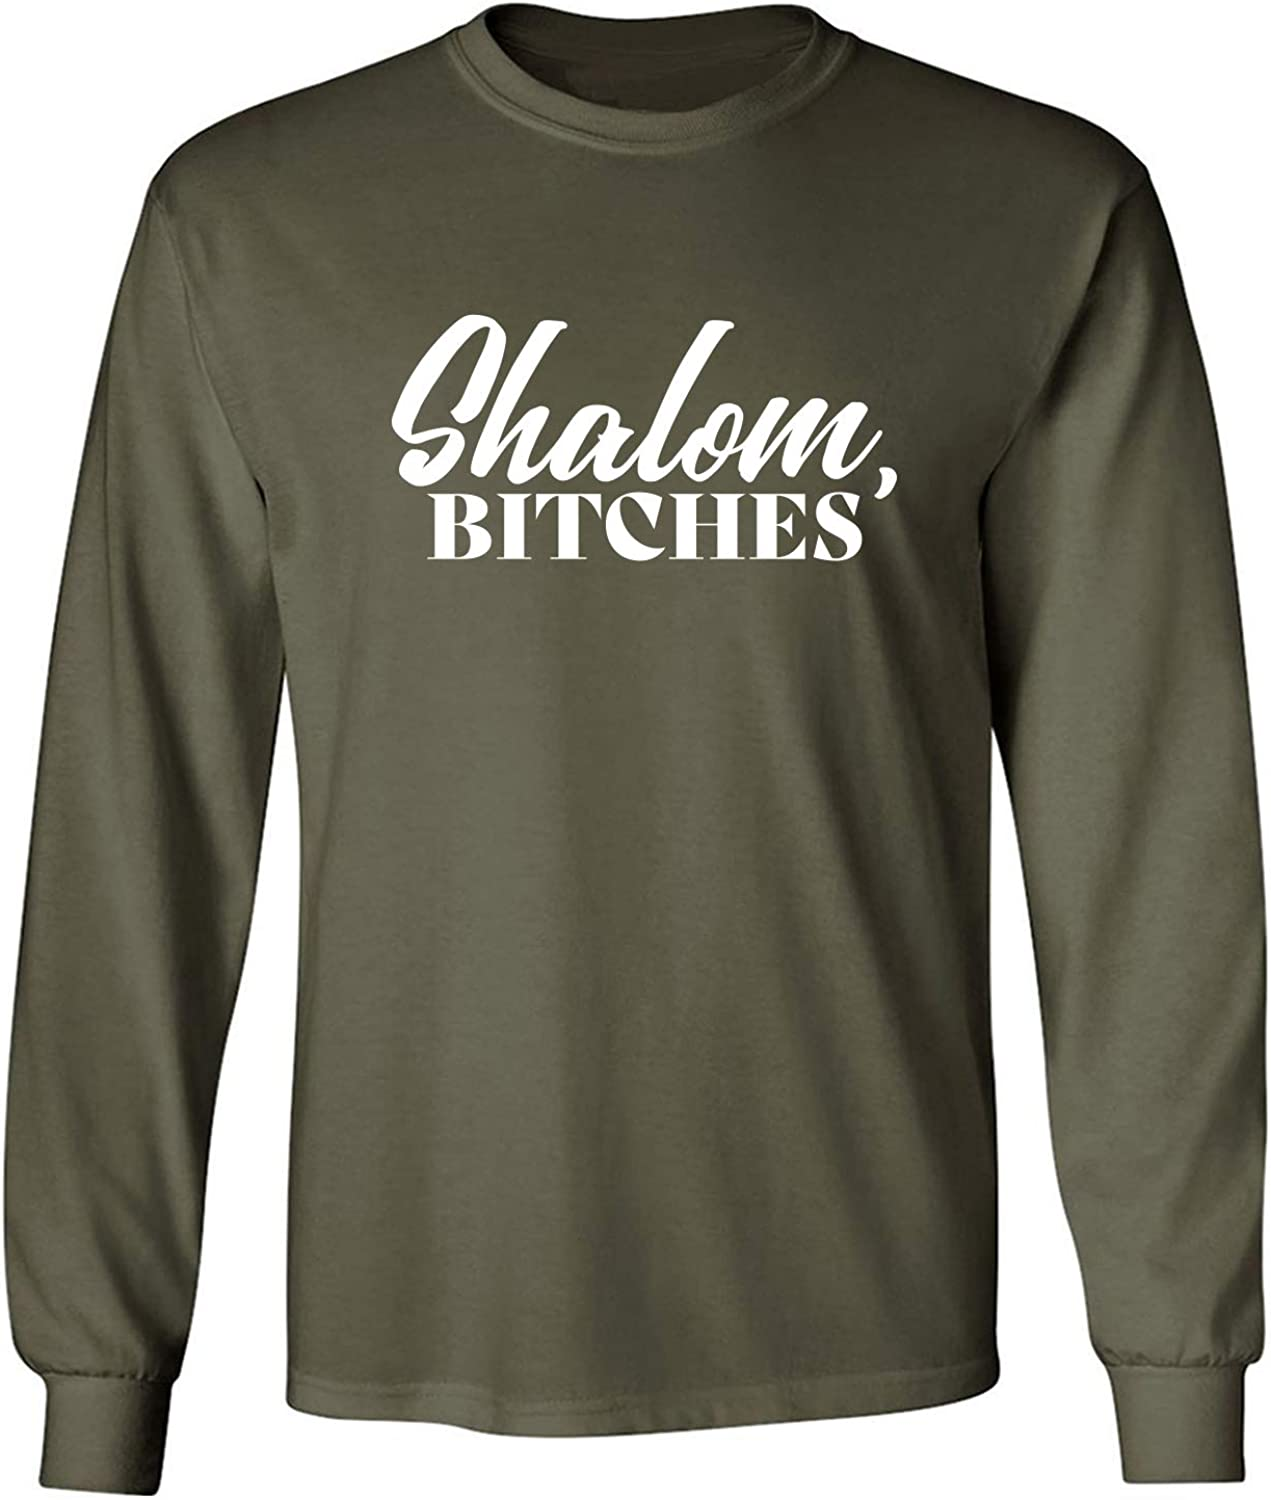 Shalom Bitches Adult Long Sleeve T in Miltary Green - XXX-Large